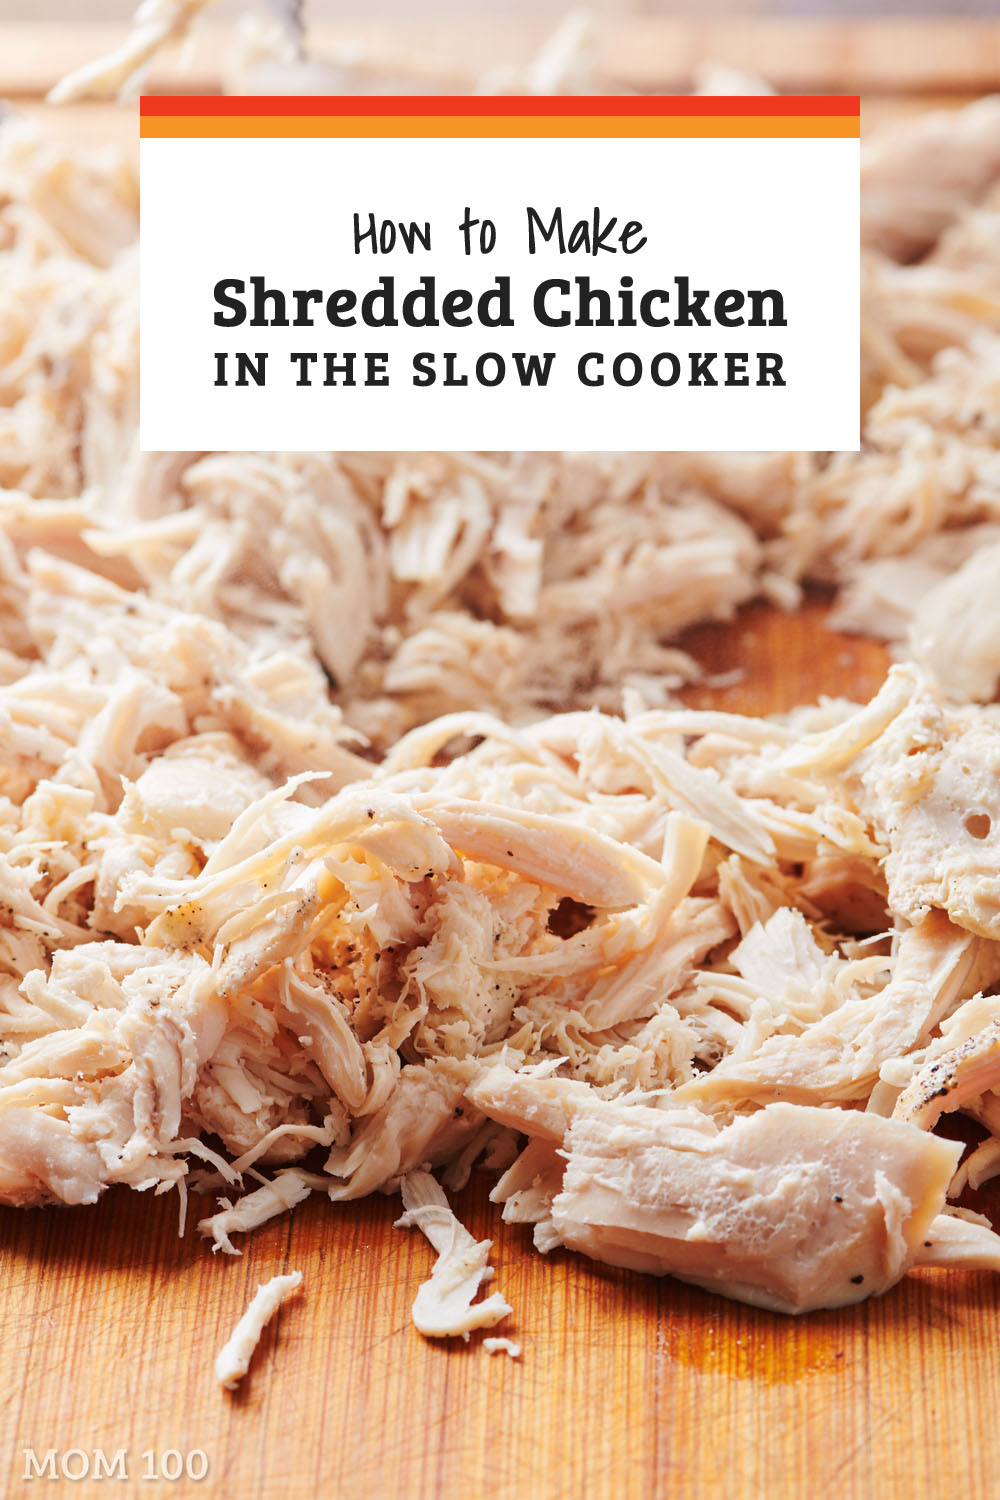 How to Make Shredded Chicken in the Slow Cooker: For making the most tender chicken for shredding, the slow cooker is terrific. Set-it-and-forget-it, resulting in super moist, soft chicken every time.